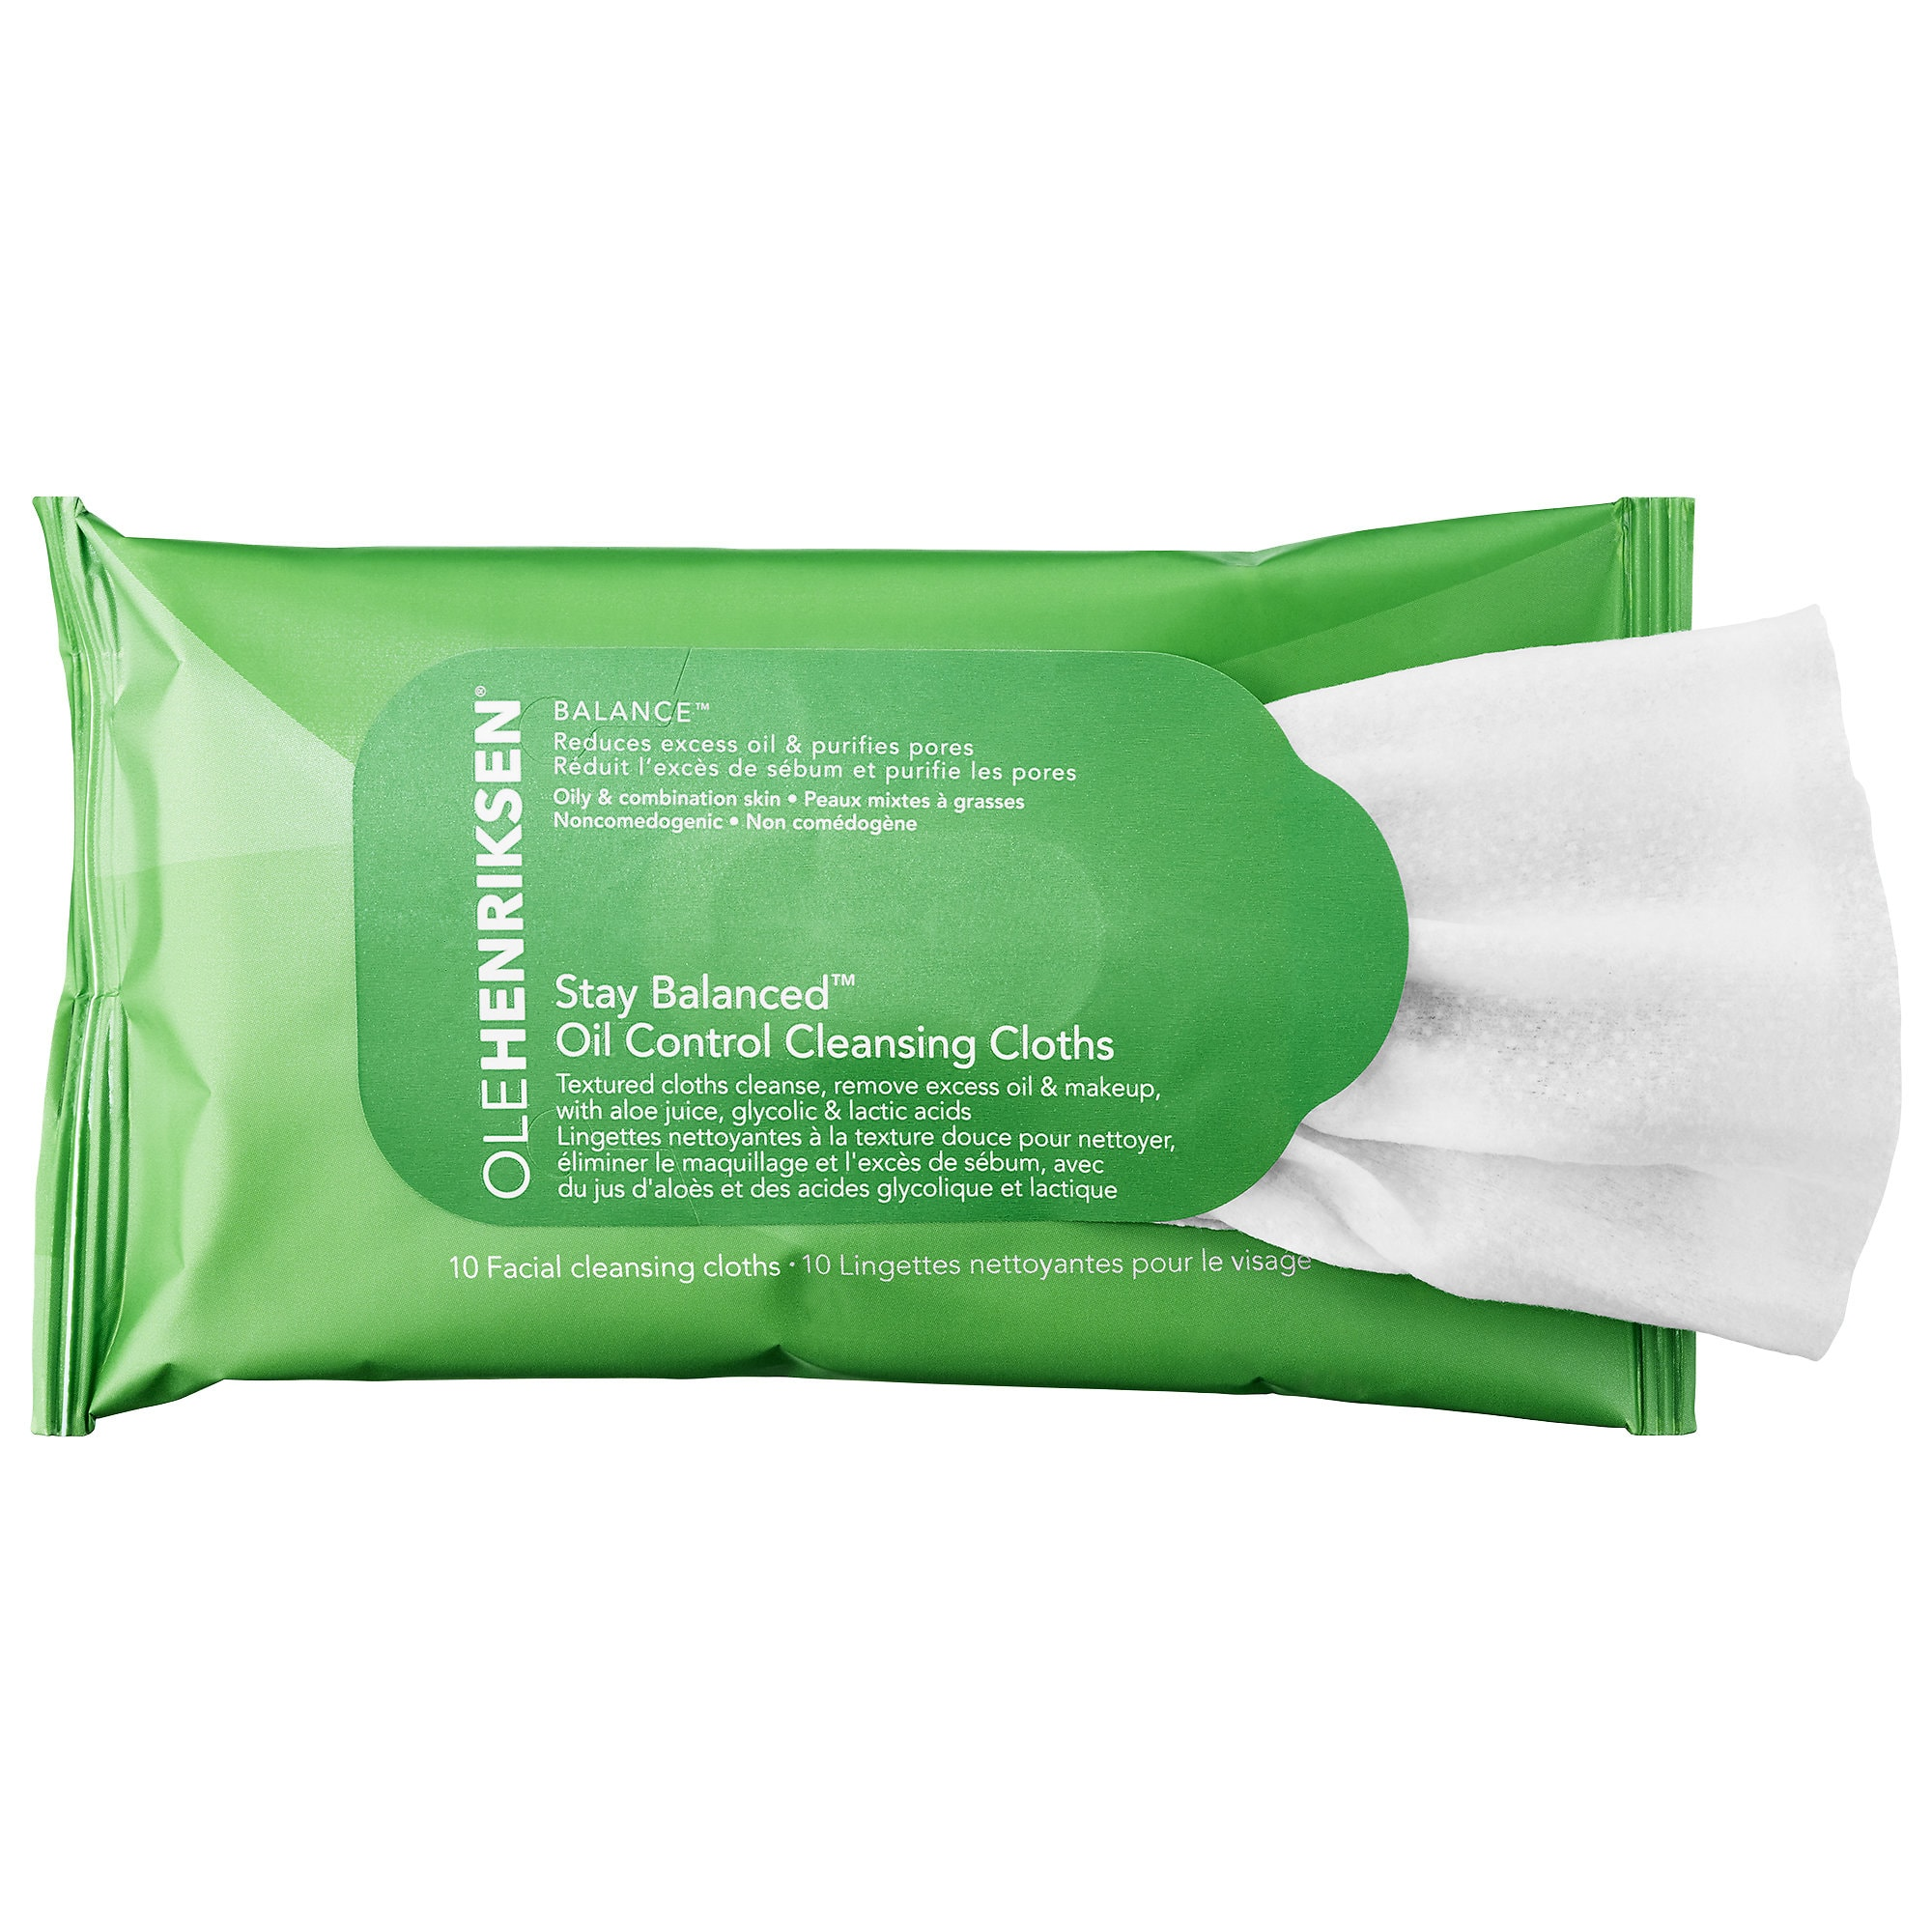 Stay Balanced™ Oil Control Cleansing Cloths